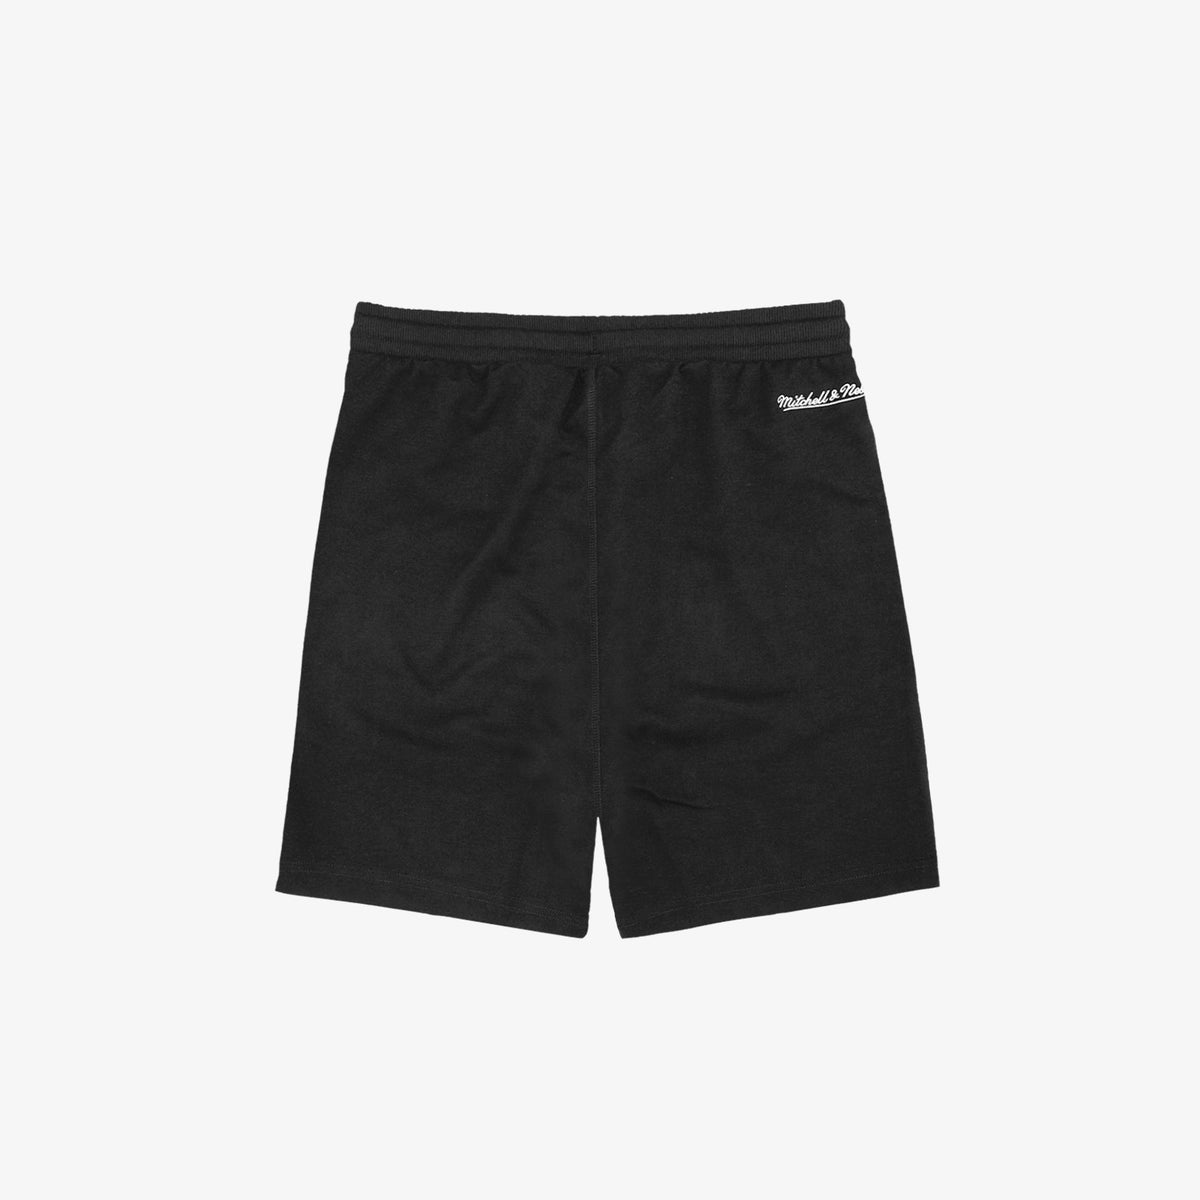 Chicago Bulls Hometown Champs Shorts - Black